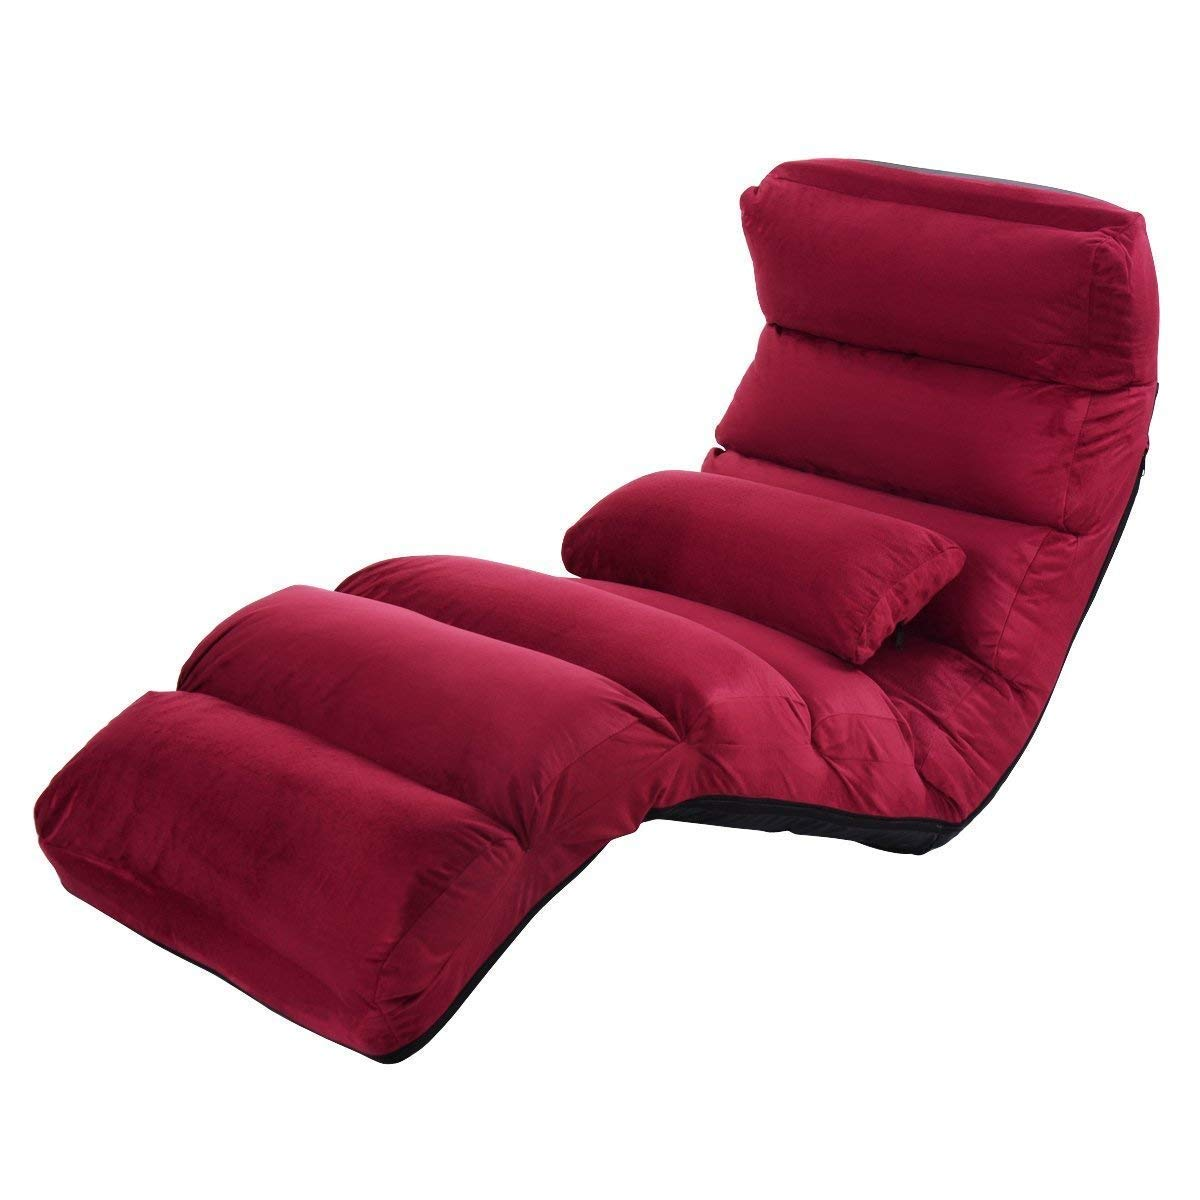 Giantex Folding Lazy Sofa Chair Stylish Sofa Couch Beds Lounge Chair W/Pillow (Burgundy) by Giantex